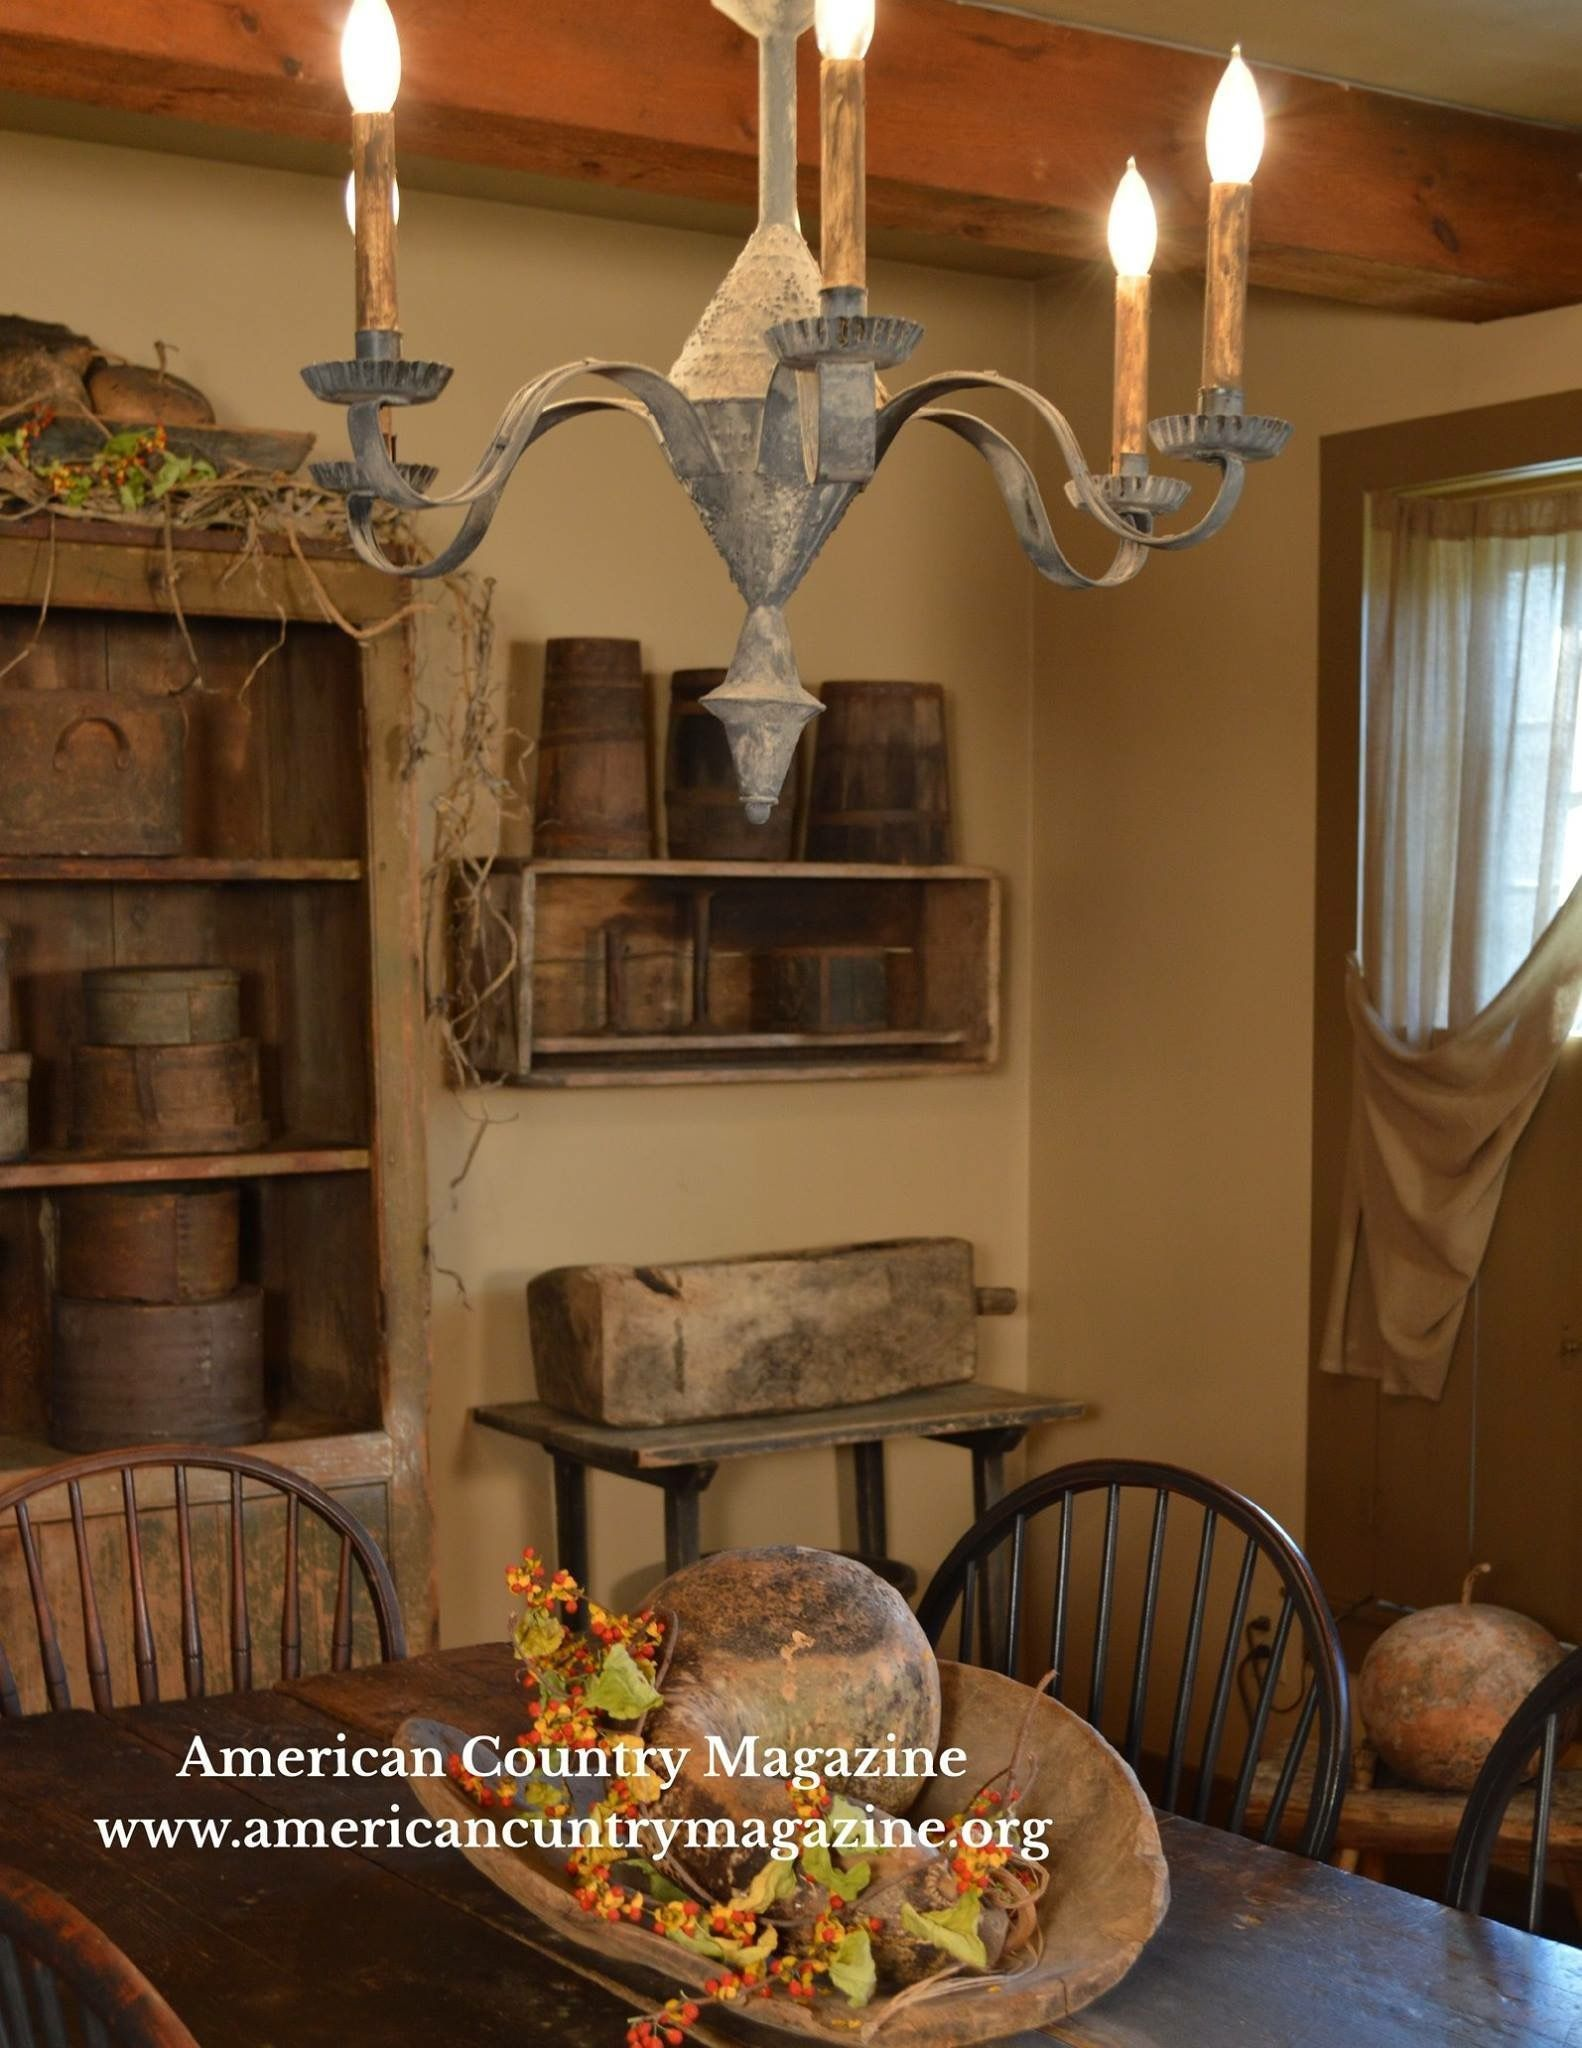 #Primitivediningrooms #Primdecor #Primitivehomes